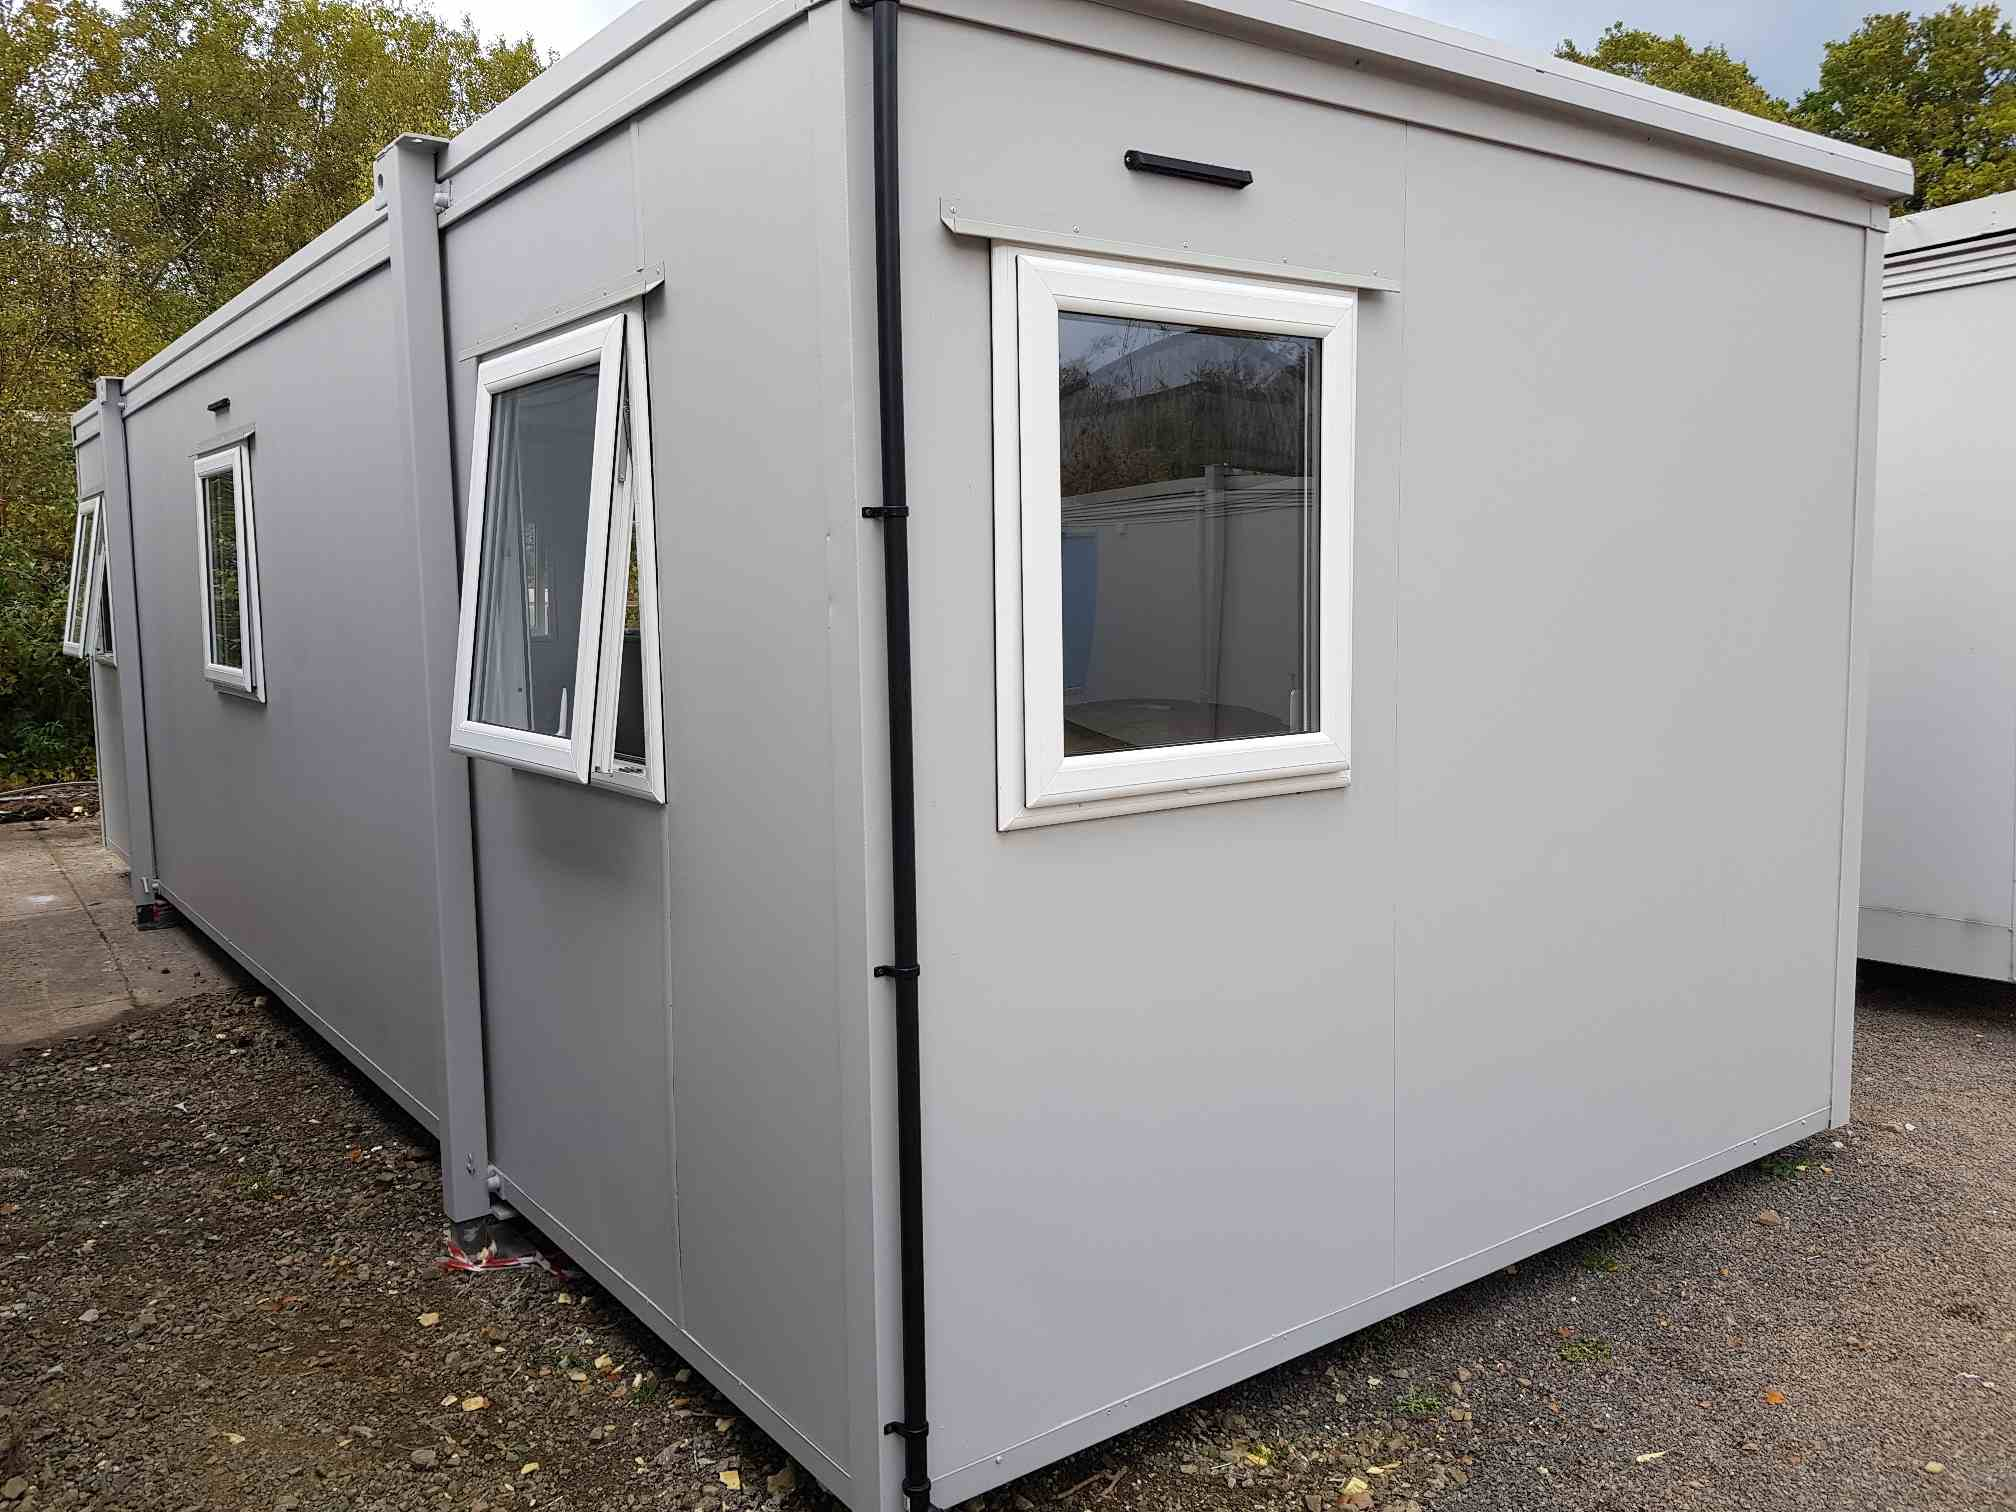 Portable Cabins For Hire | Portable Cabins For Sale UK